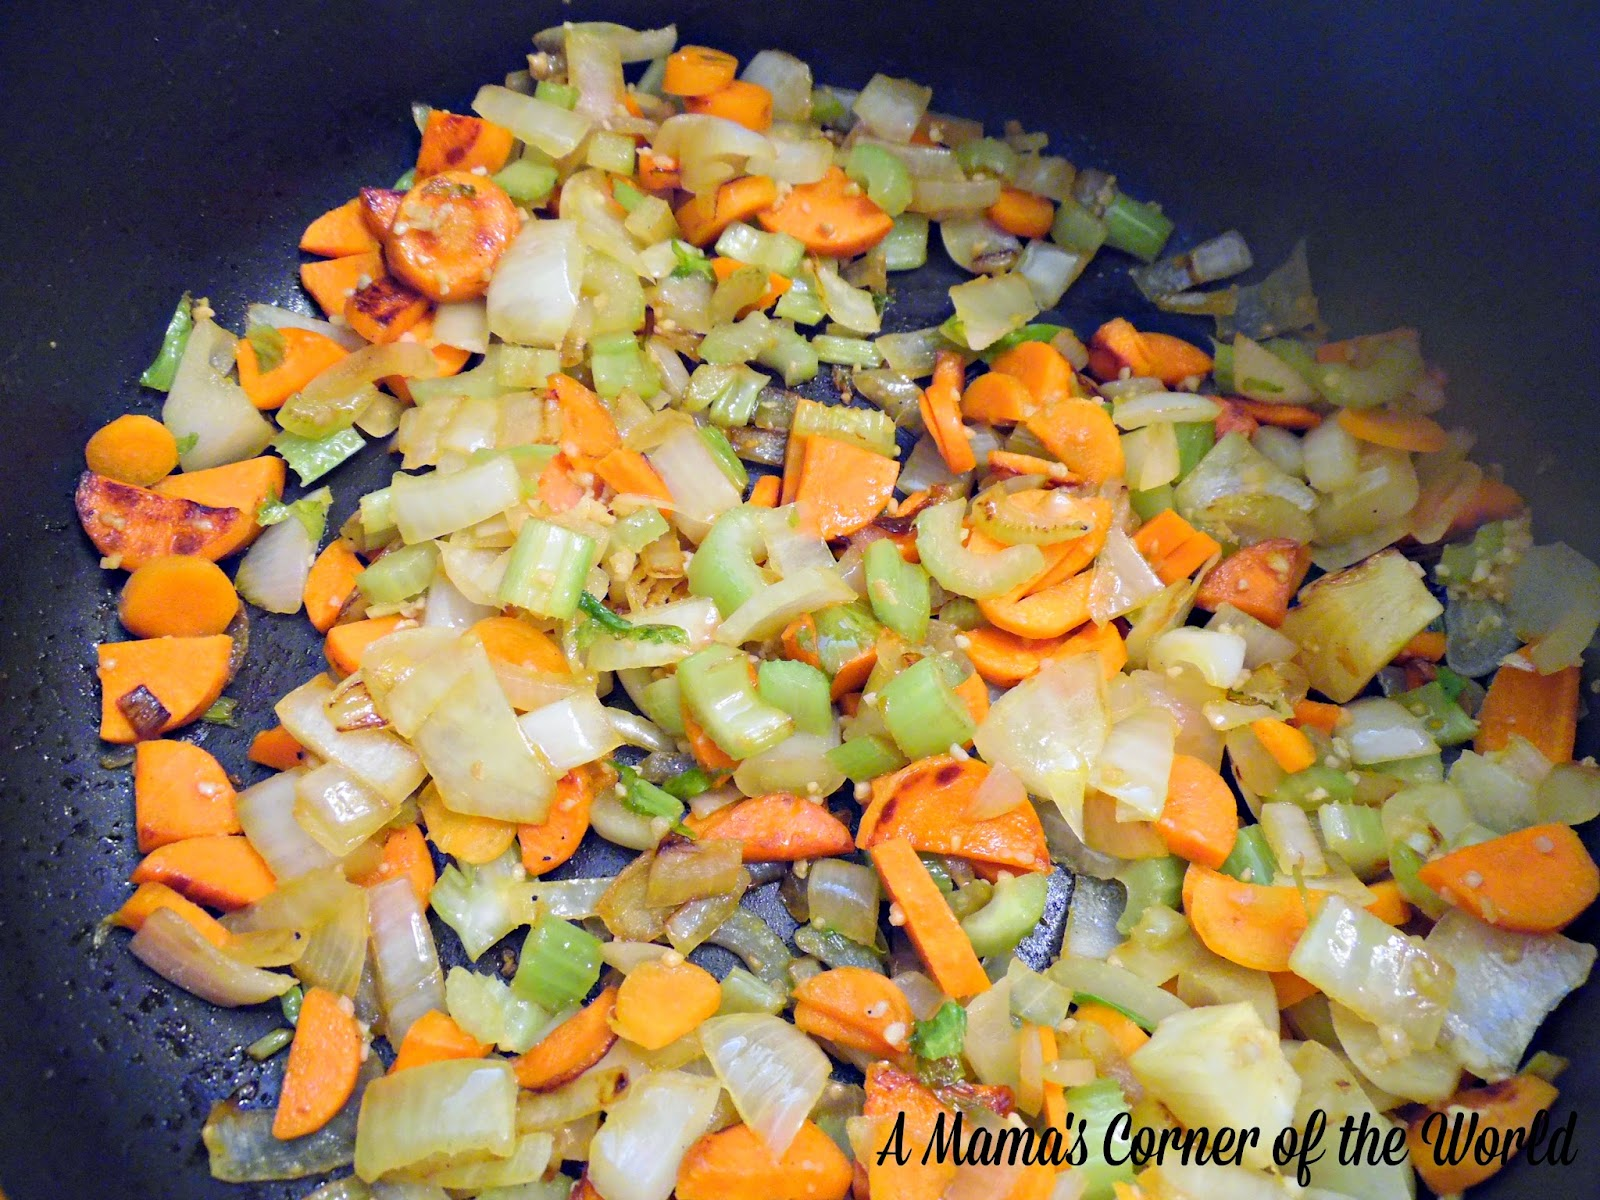 Vegetables cooked as the base for lentil soup.